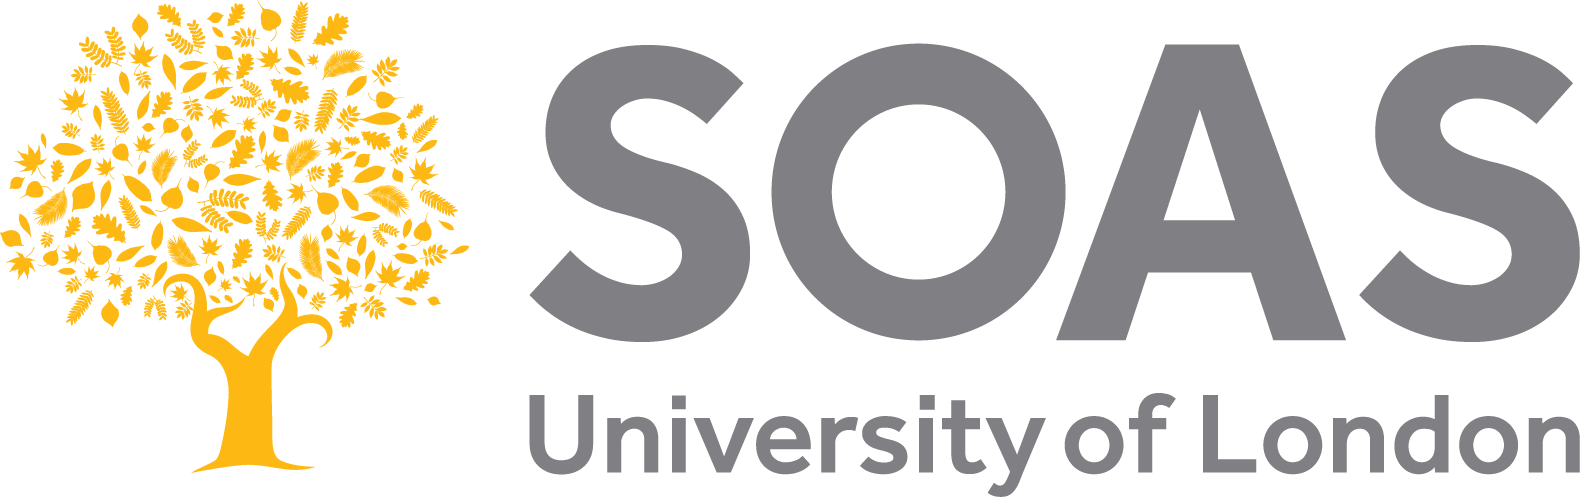 Allan and Nesta Ferguson Scholarships at SOAS University of London